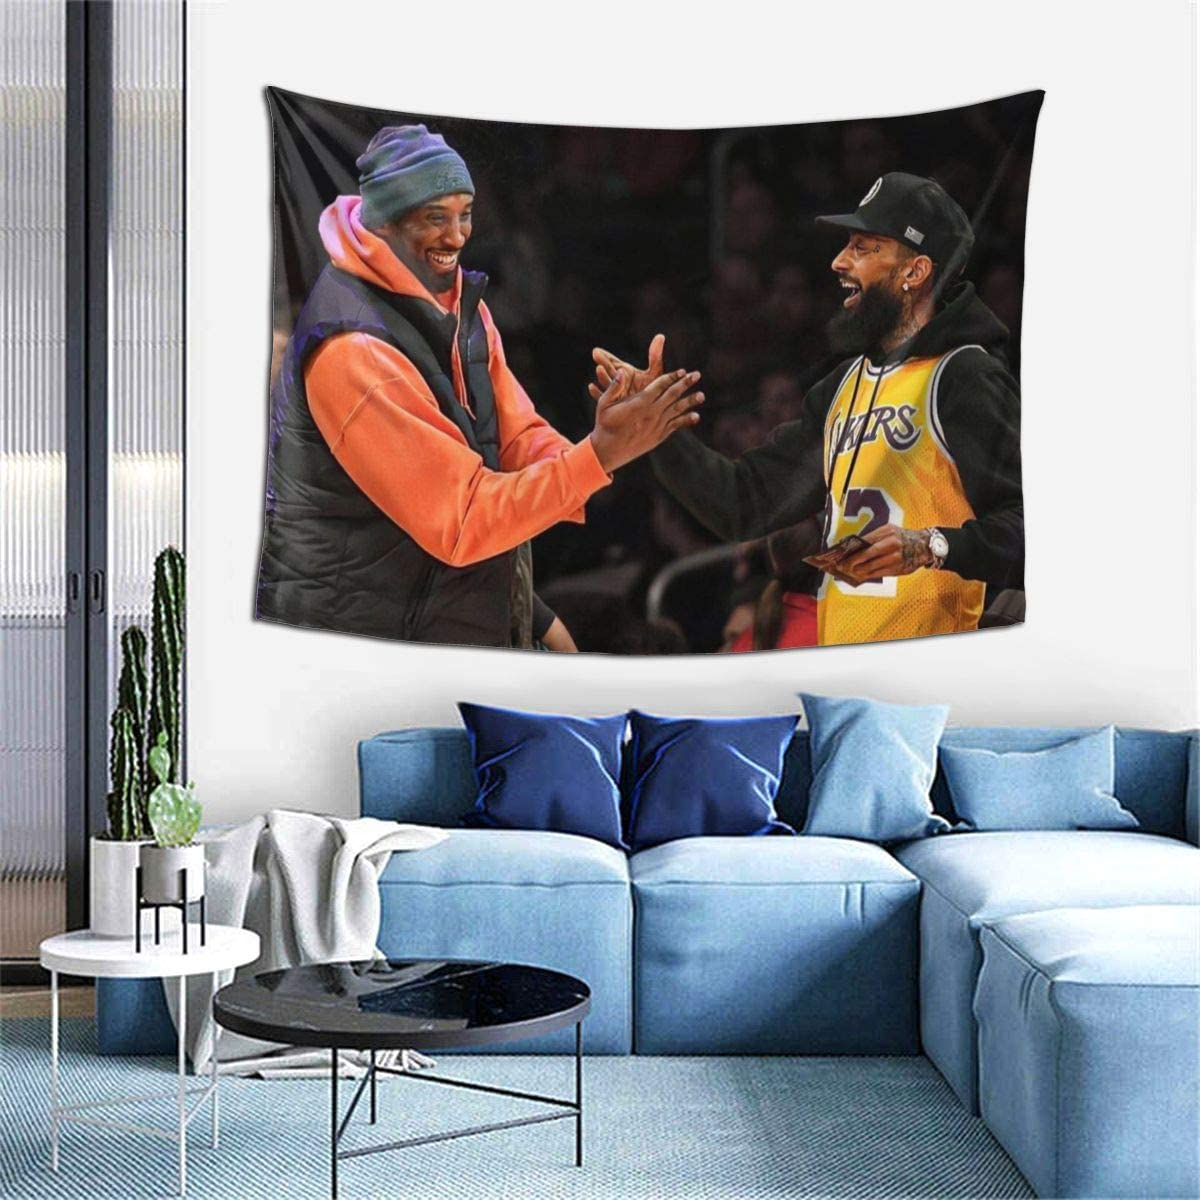 Nipsey-Hussle Rest In Peace Legend Tapestry Wall Hanging Tapestries 3d Printing Blanket Wall Art For Living Room Bedroom Home Decor 60×40 Inch